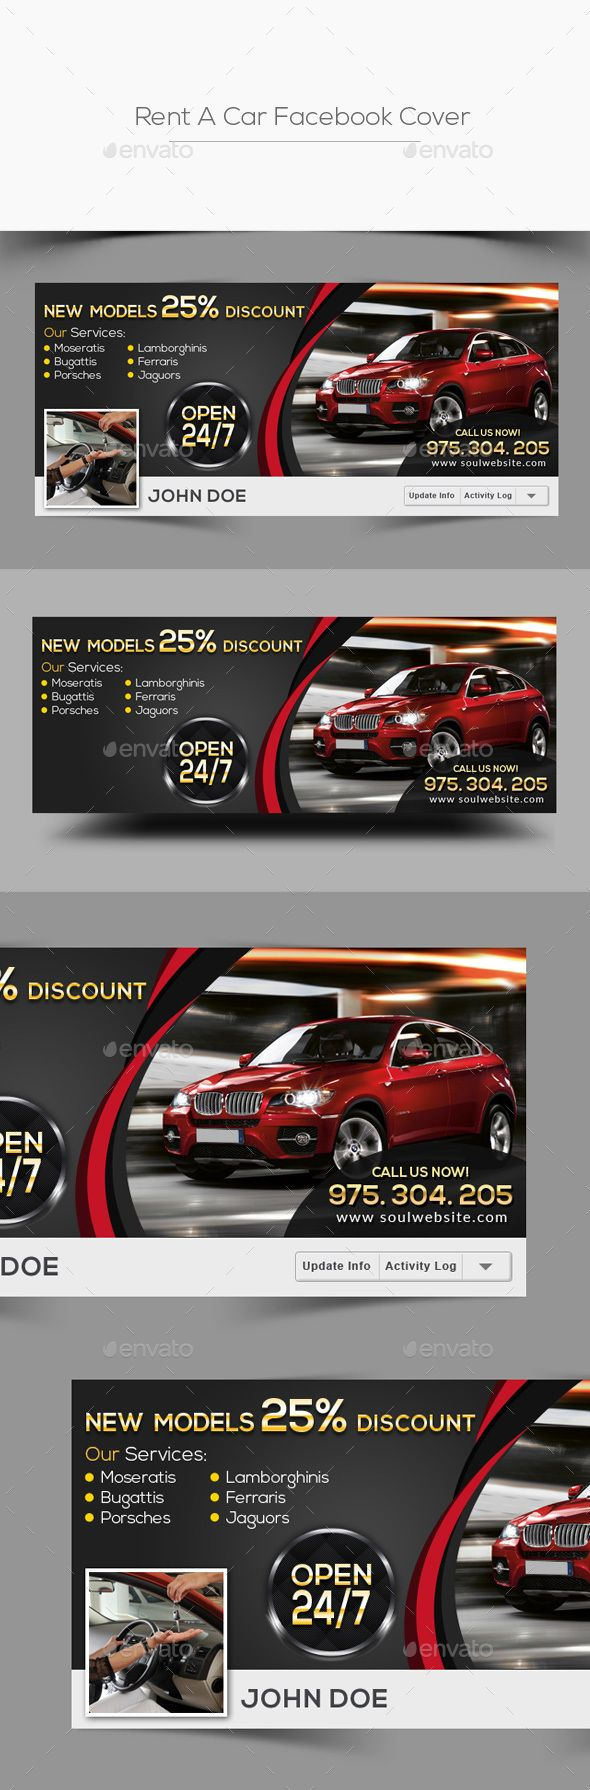 Fully layered Adobe Photoshop CS5 1 Layout Designs 1 PSD File RGB Color 851315 Px 72 Dpi Smart Object For Easy Chang